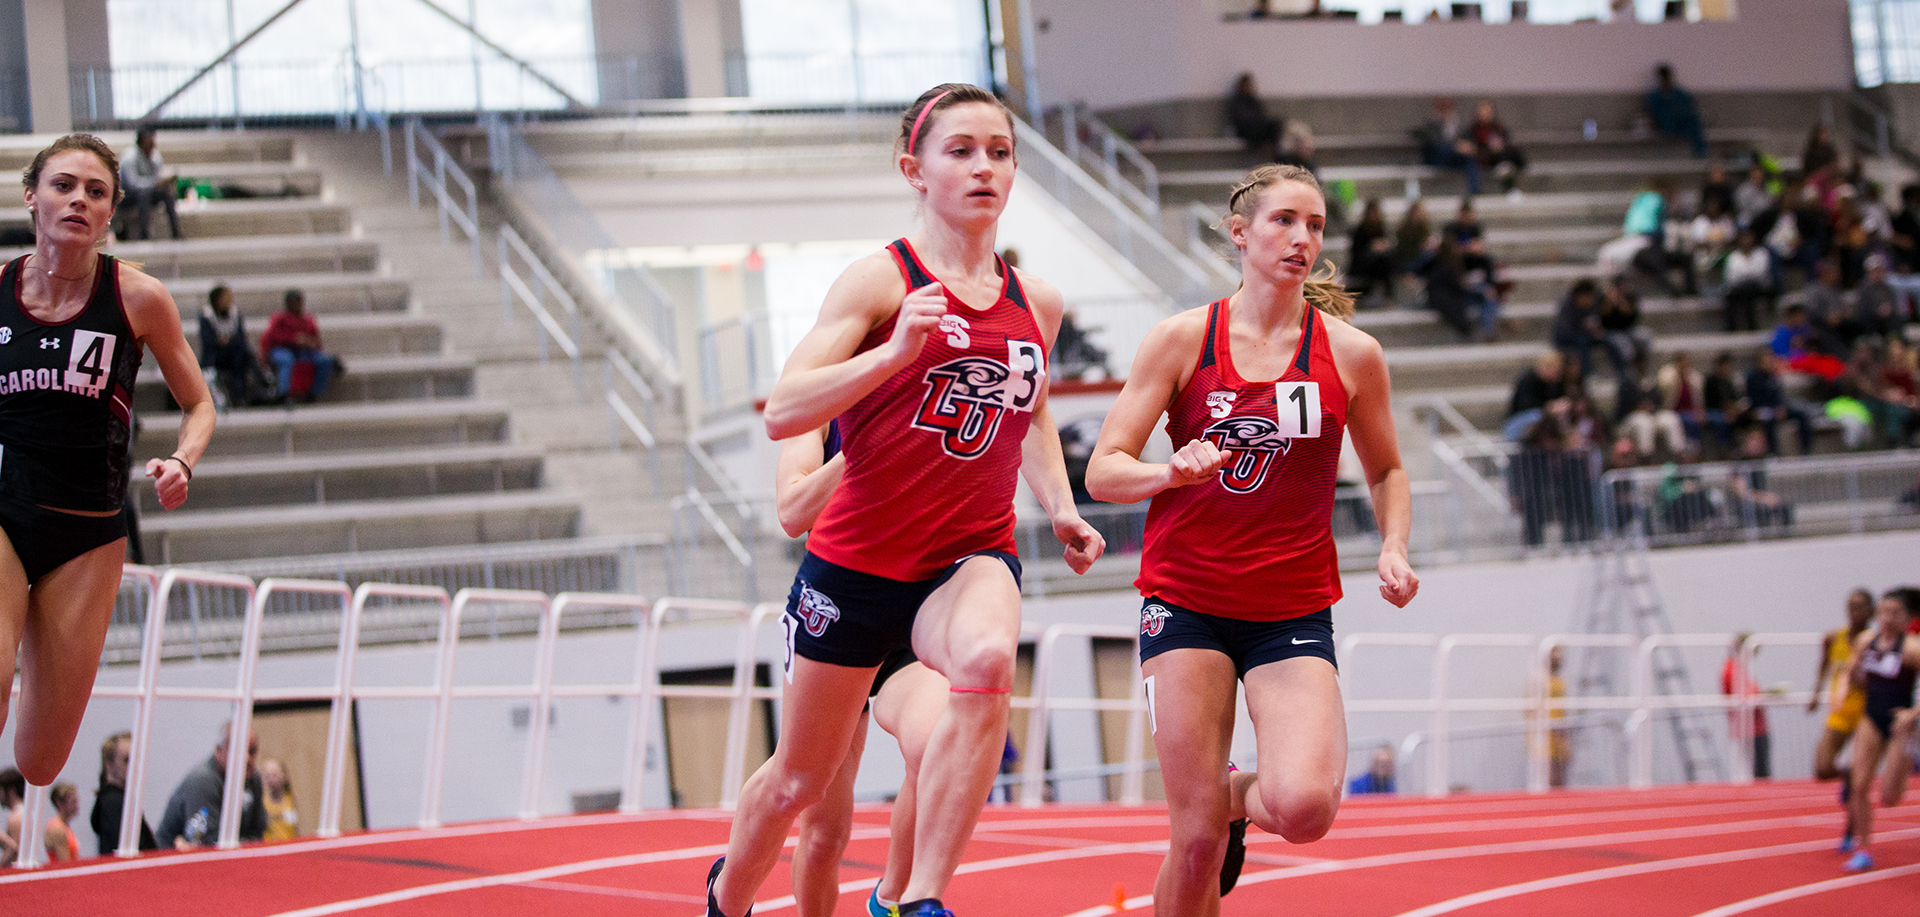 Freshman Tanner Ealum will keep busy this weekend at the Penn Relays, between the 4 x 200, 4 x 400 and distance medley relays.